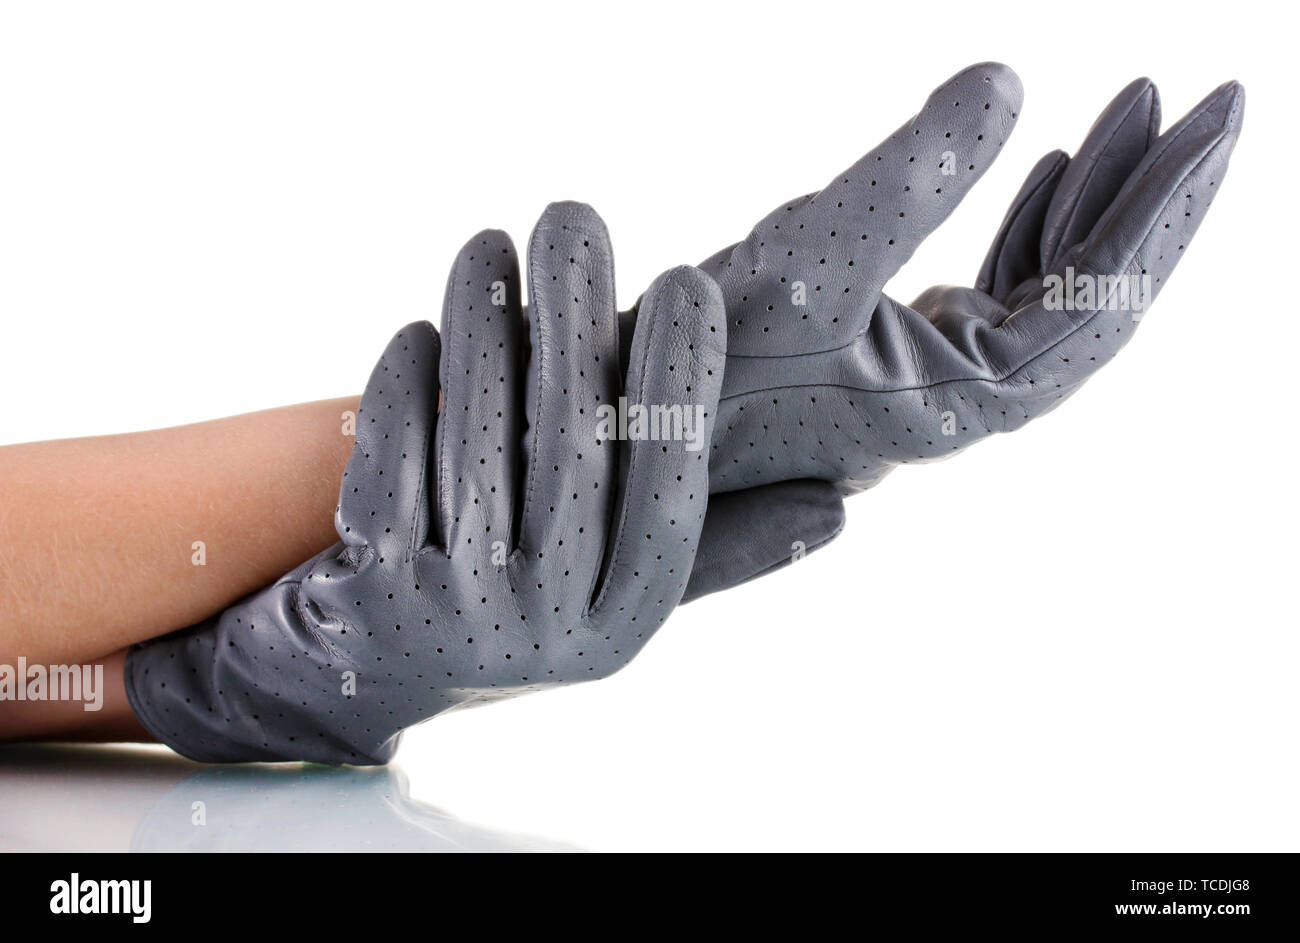 67010a2f6 Hand Hands Female Leather Gloves Stock Photos & Hand Hands Female ...